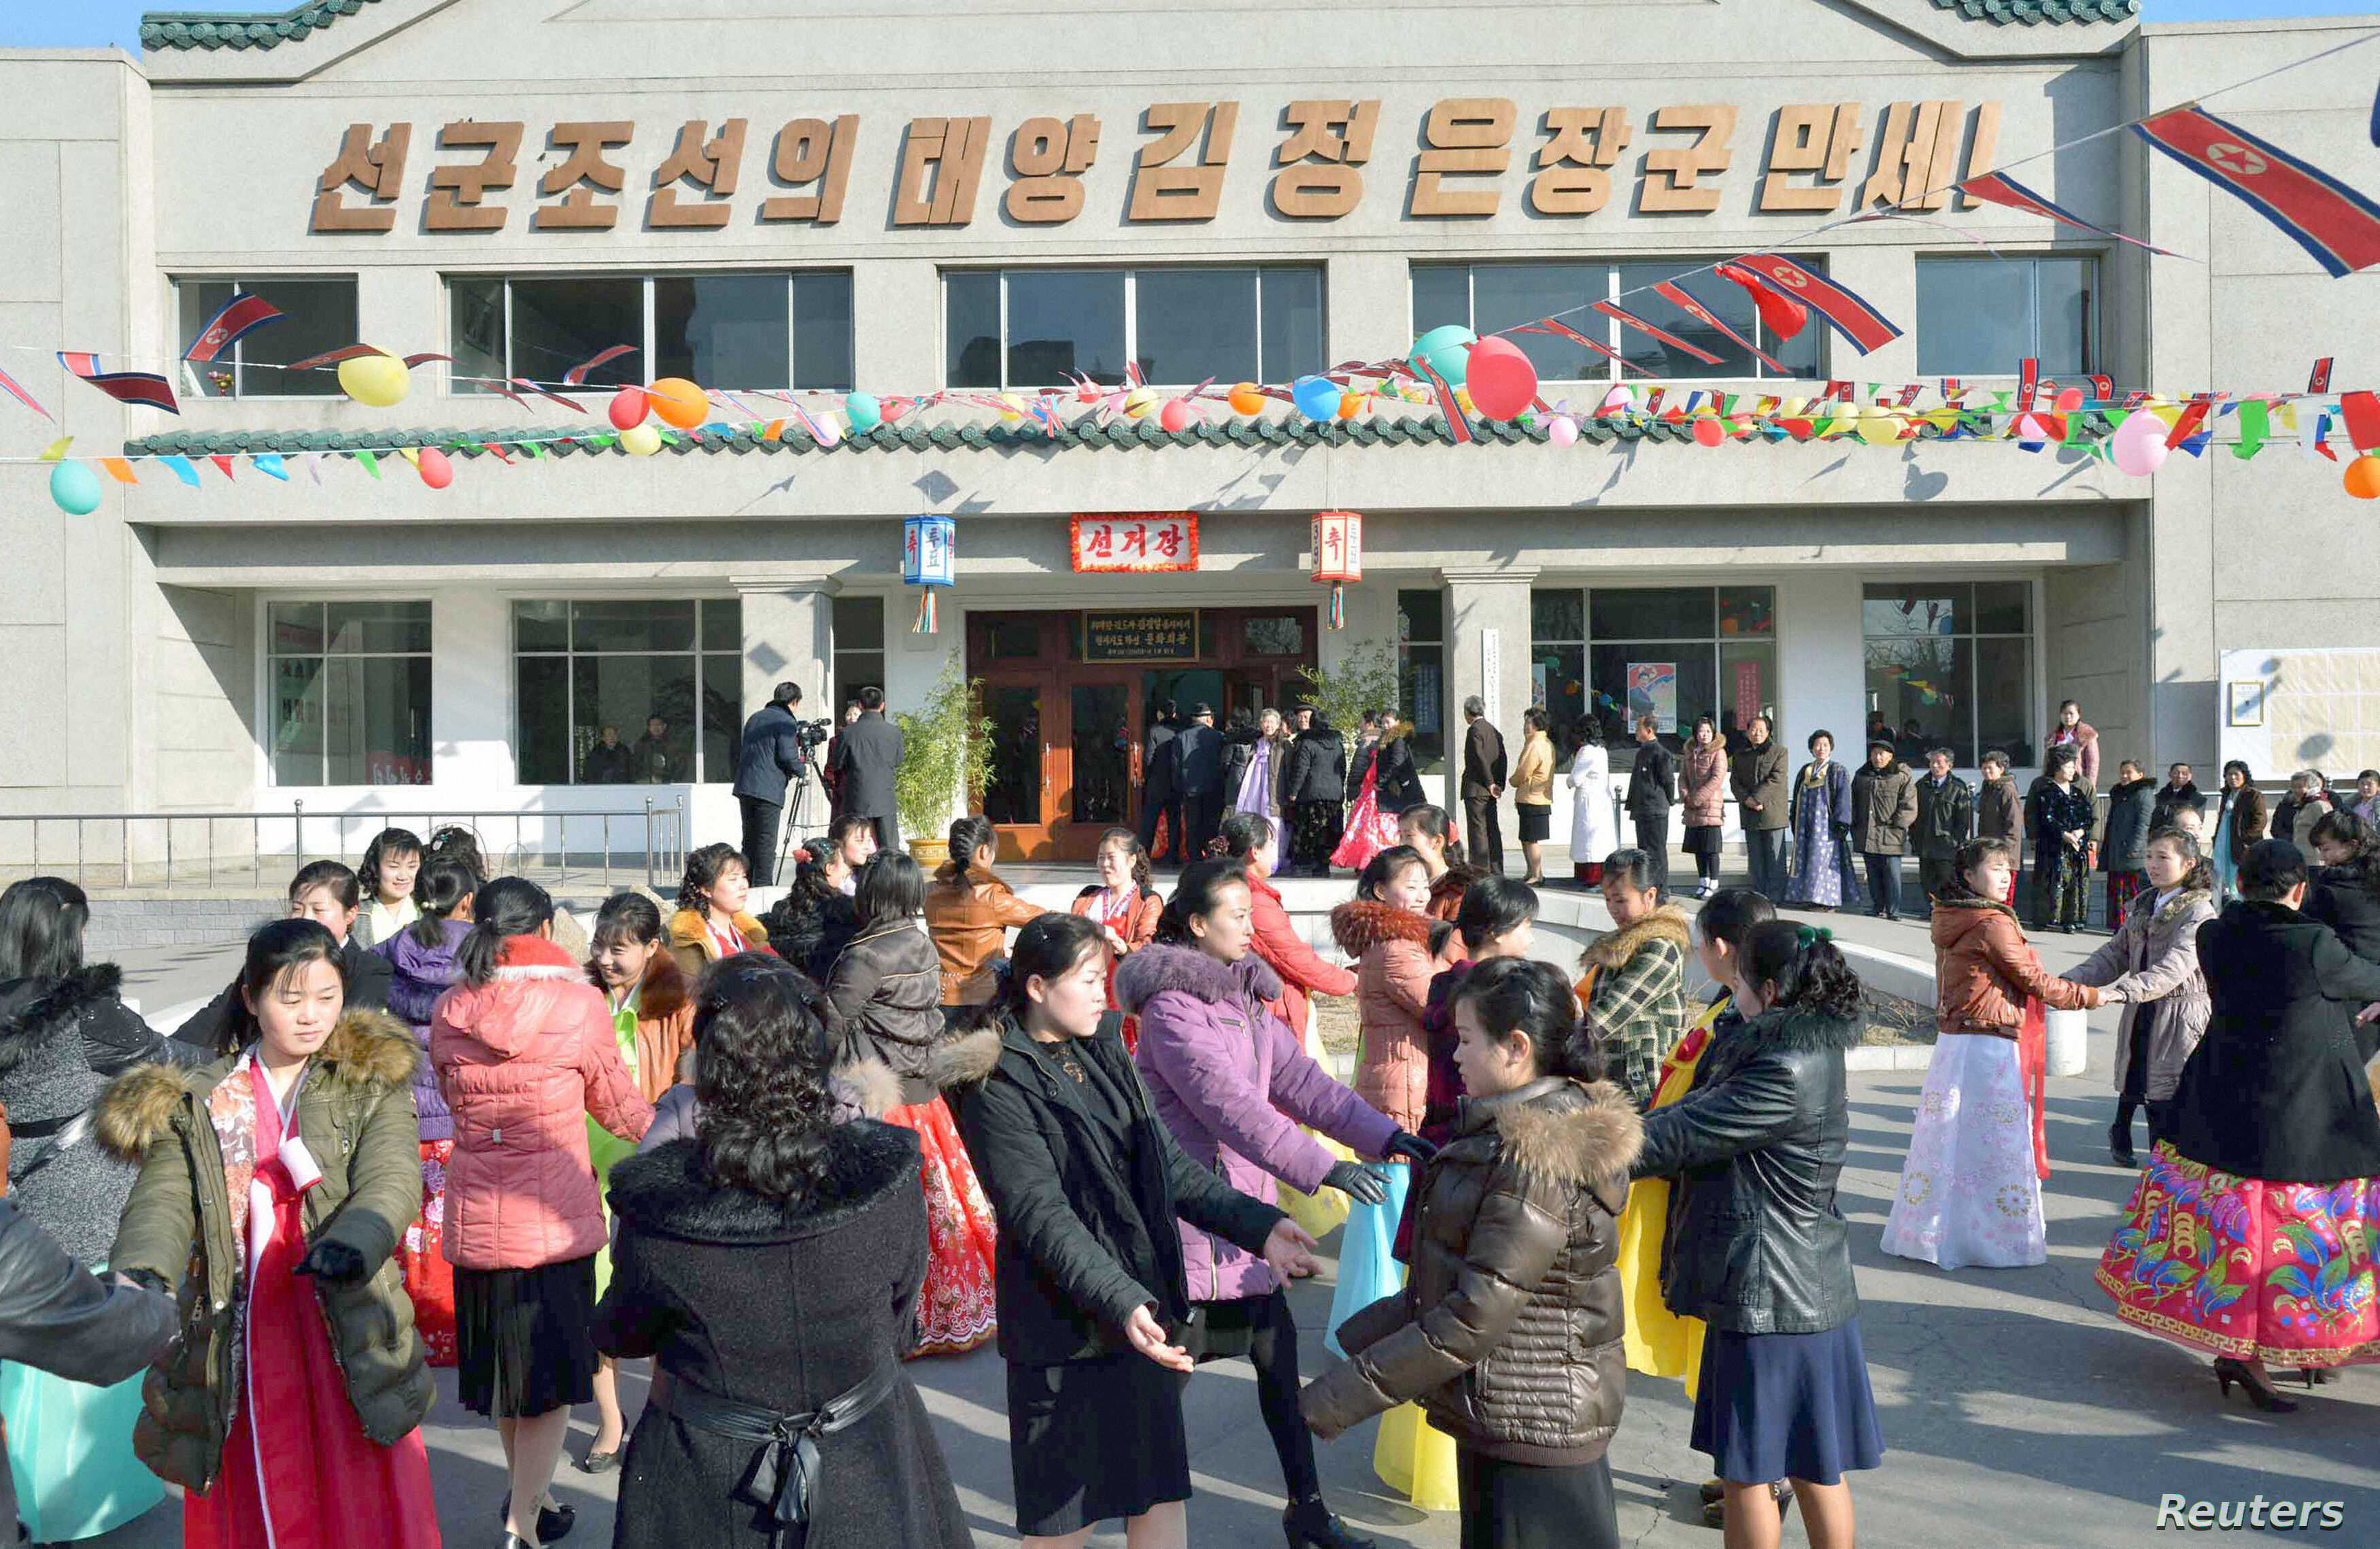 People dance to celebrate as the nation holds elections for deputies to the 13th Supreme People's Assembly (SPA) in Pyongyang, March 9, 2014. North Korea holds nation-wide elections to pick deputies to the Supreme People's Assembly for a new five-ye...